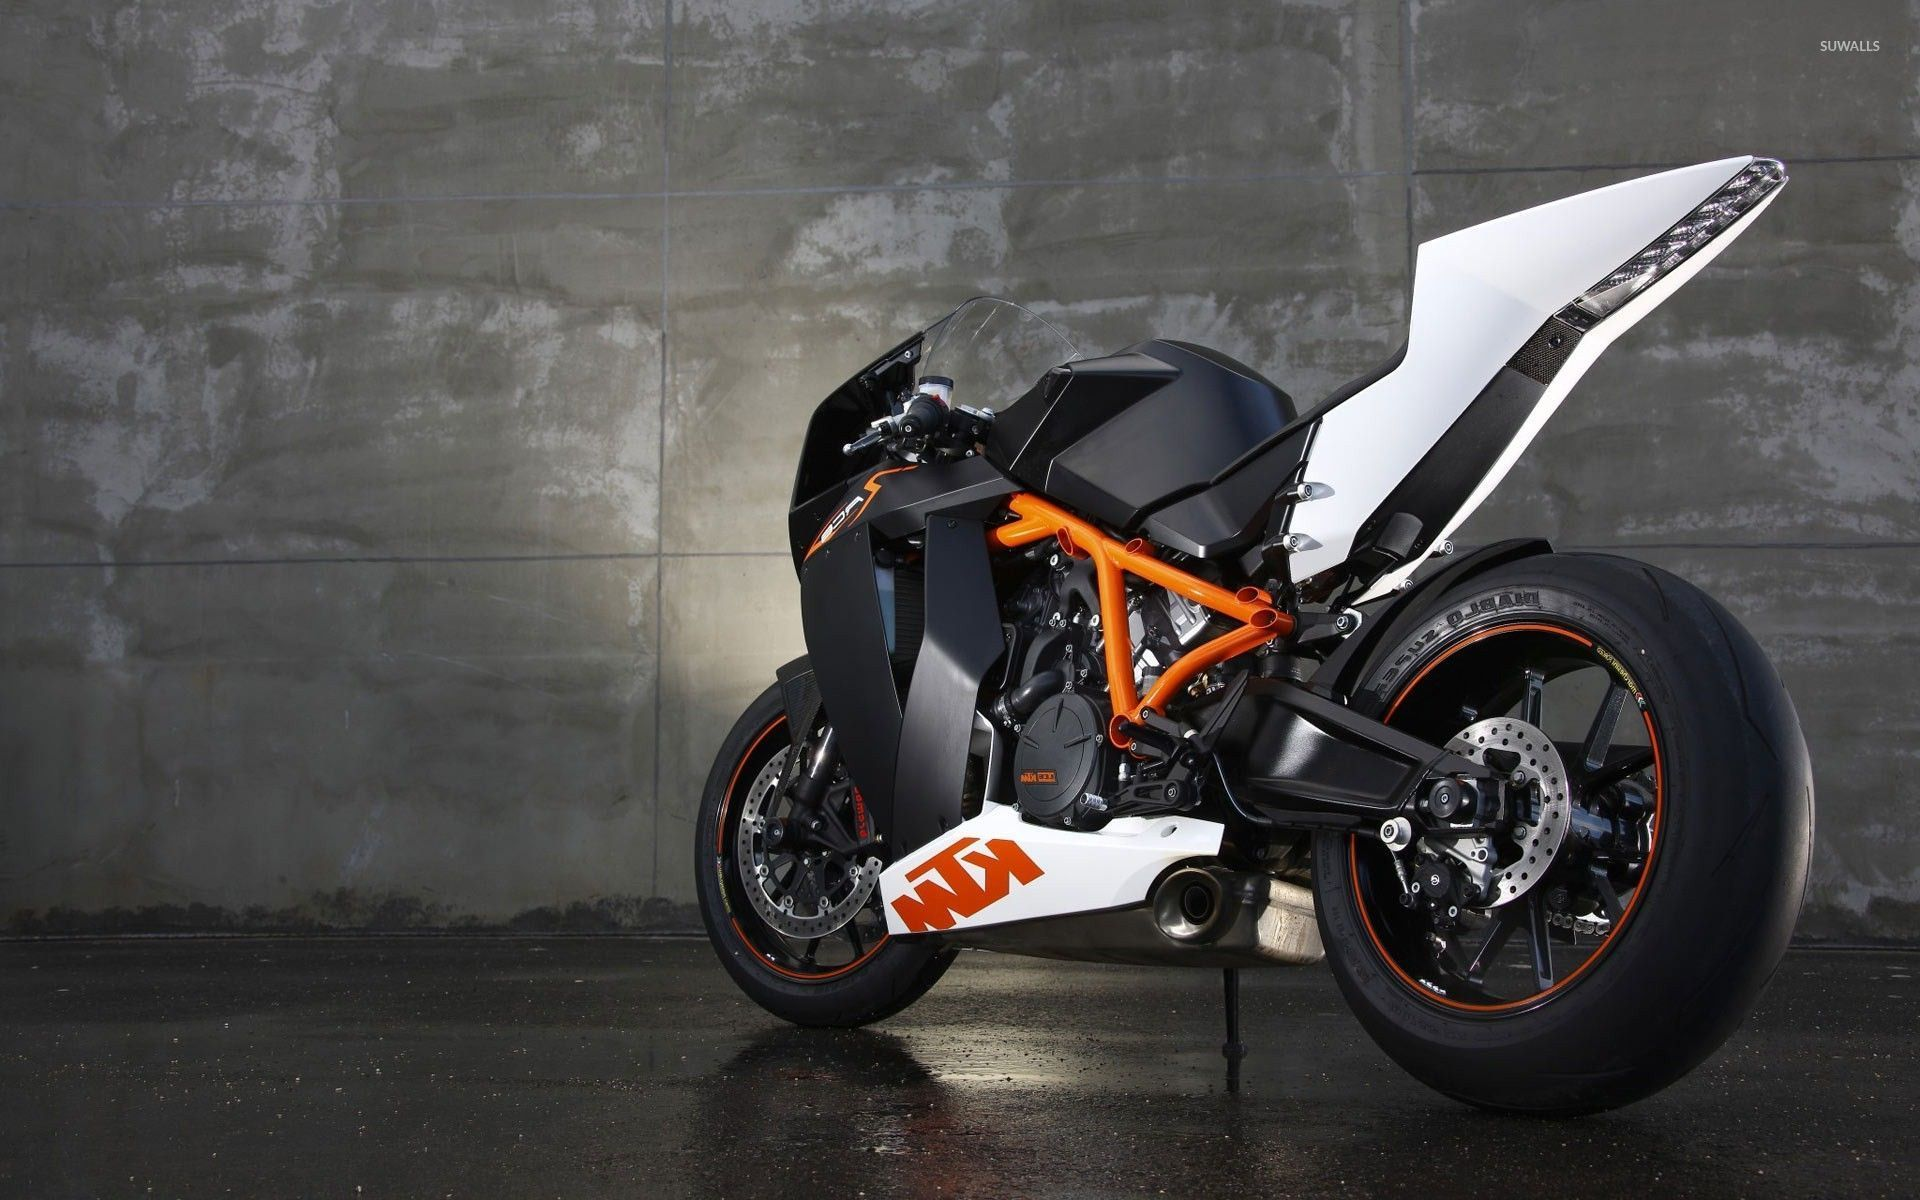 KTM 1190 RC8 wallpaper   Motorcycle wallpapers   8974 1680x1050